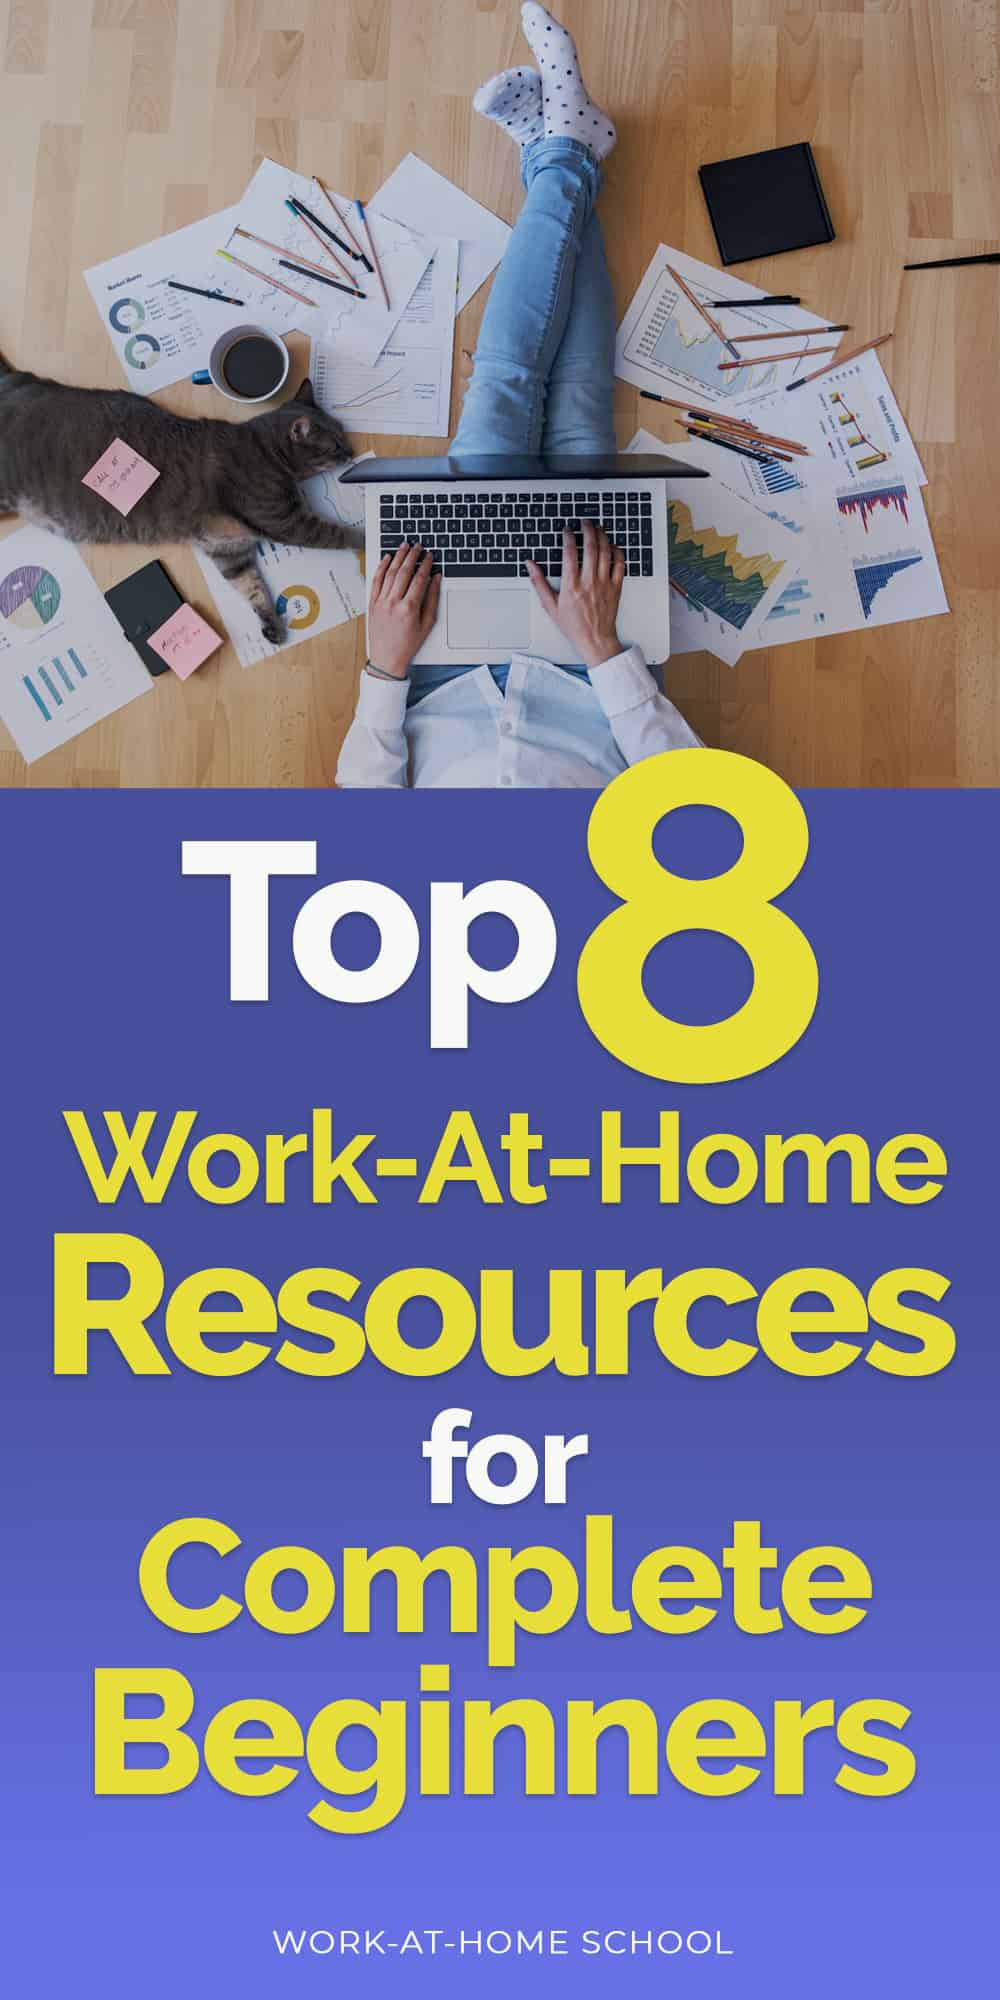 Check out these work-at-home resources for beginners so you can start your at-home business with a bang!